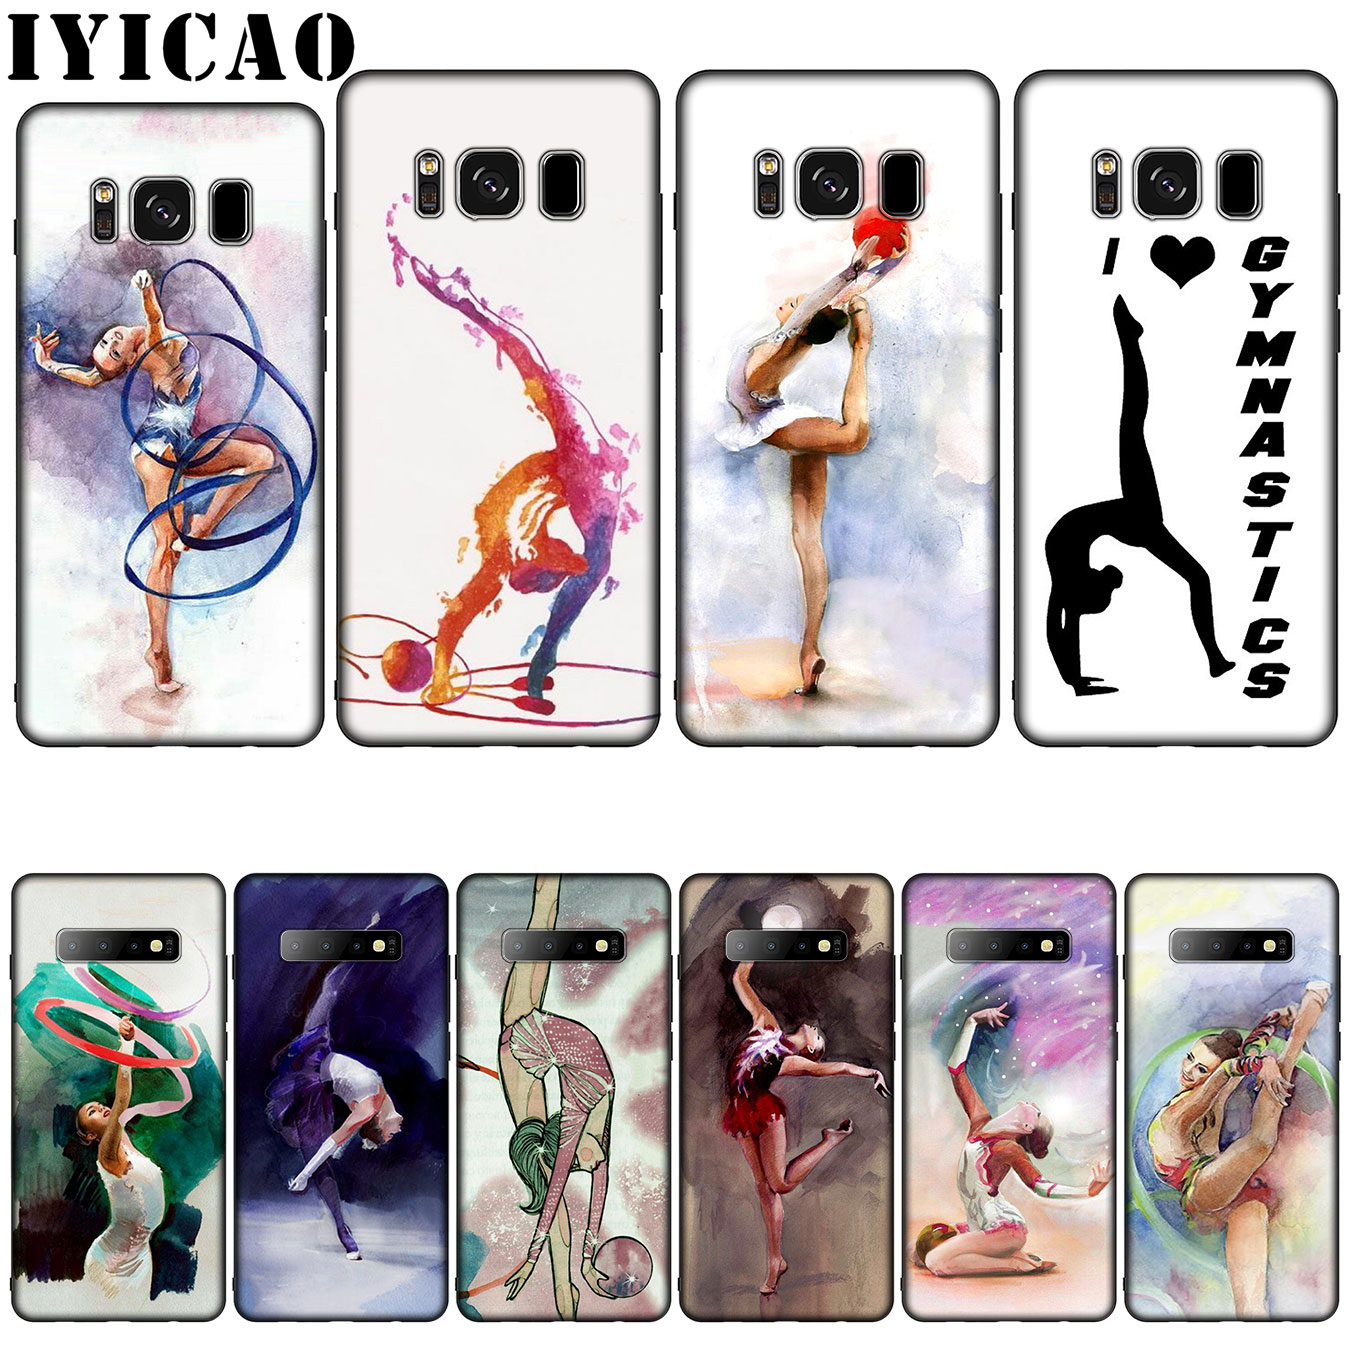 IYICAO Painting Girl Sport <font><b>Gymnastic</b></font> Silicone Soft Phone Case for Samsung Galaxy S10 S9 S8 Plus S6 S7 Edge S10e E Cover image